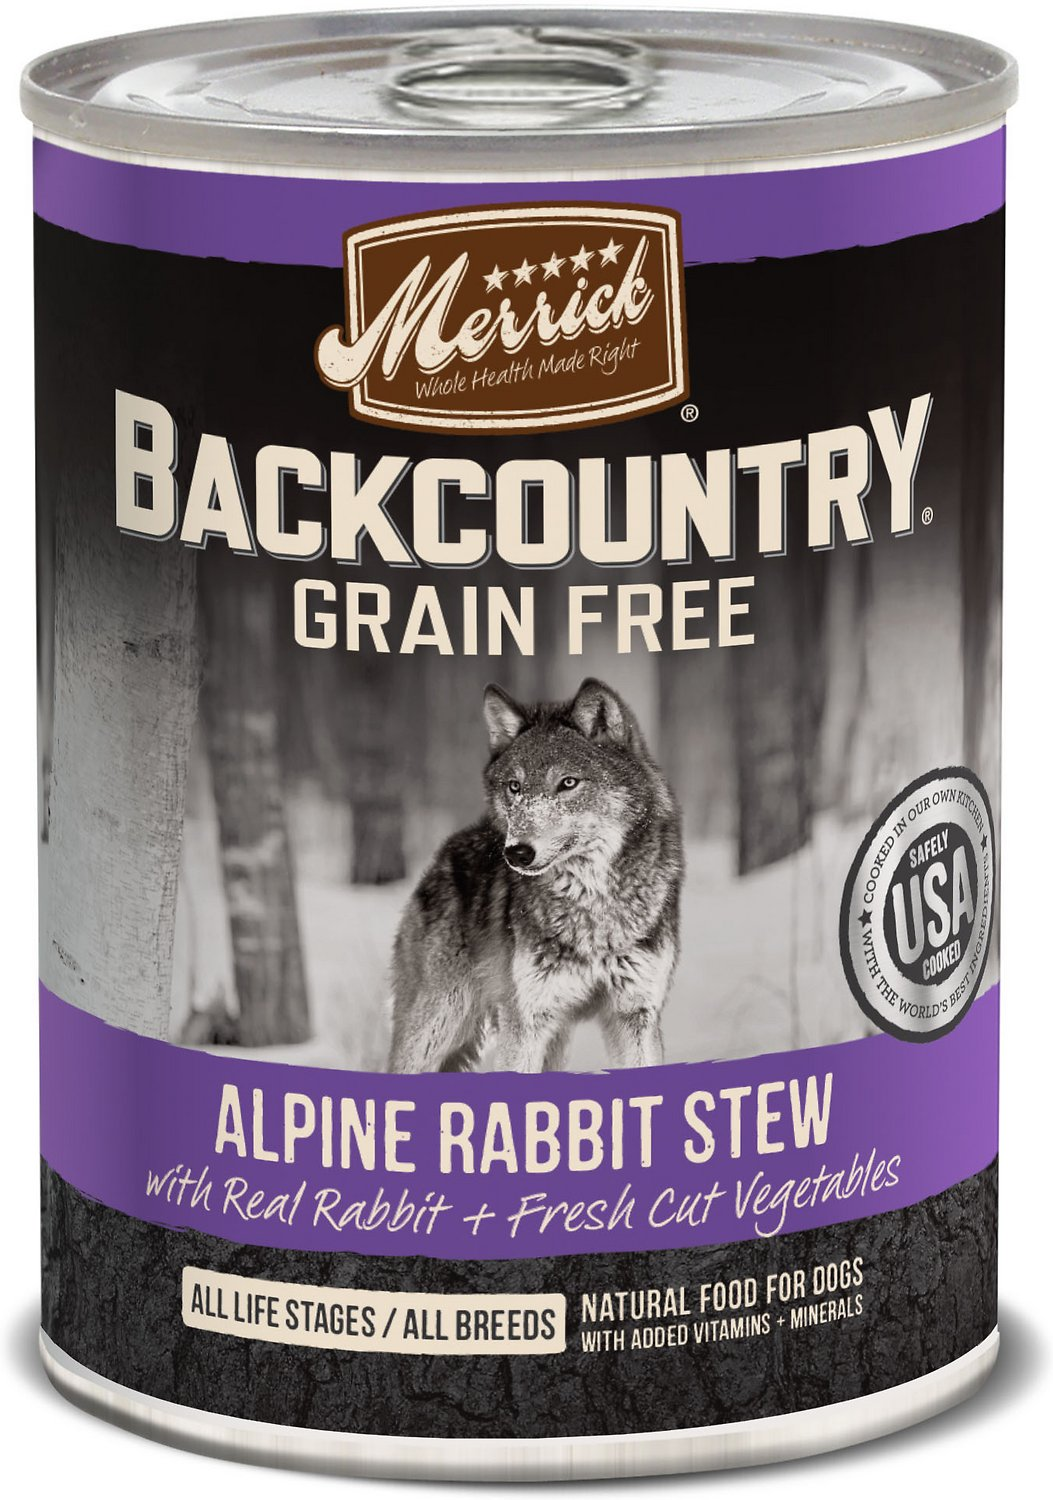 Merrick Backcountry Grain-Free Alpine Rabbit Stew Canned Dog Food, 12.7-oz